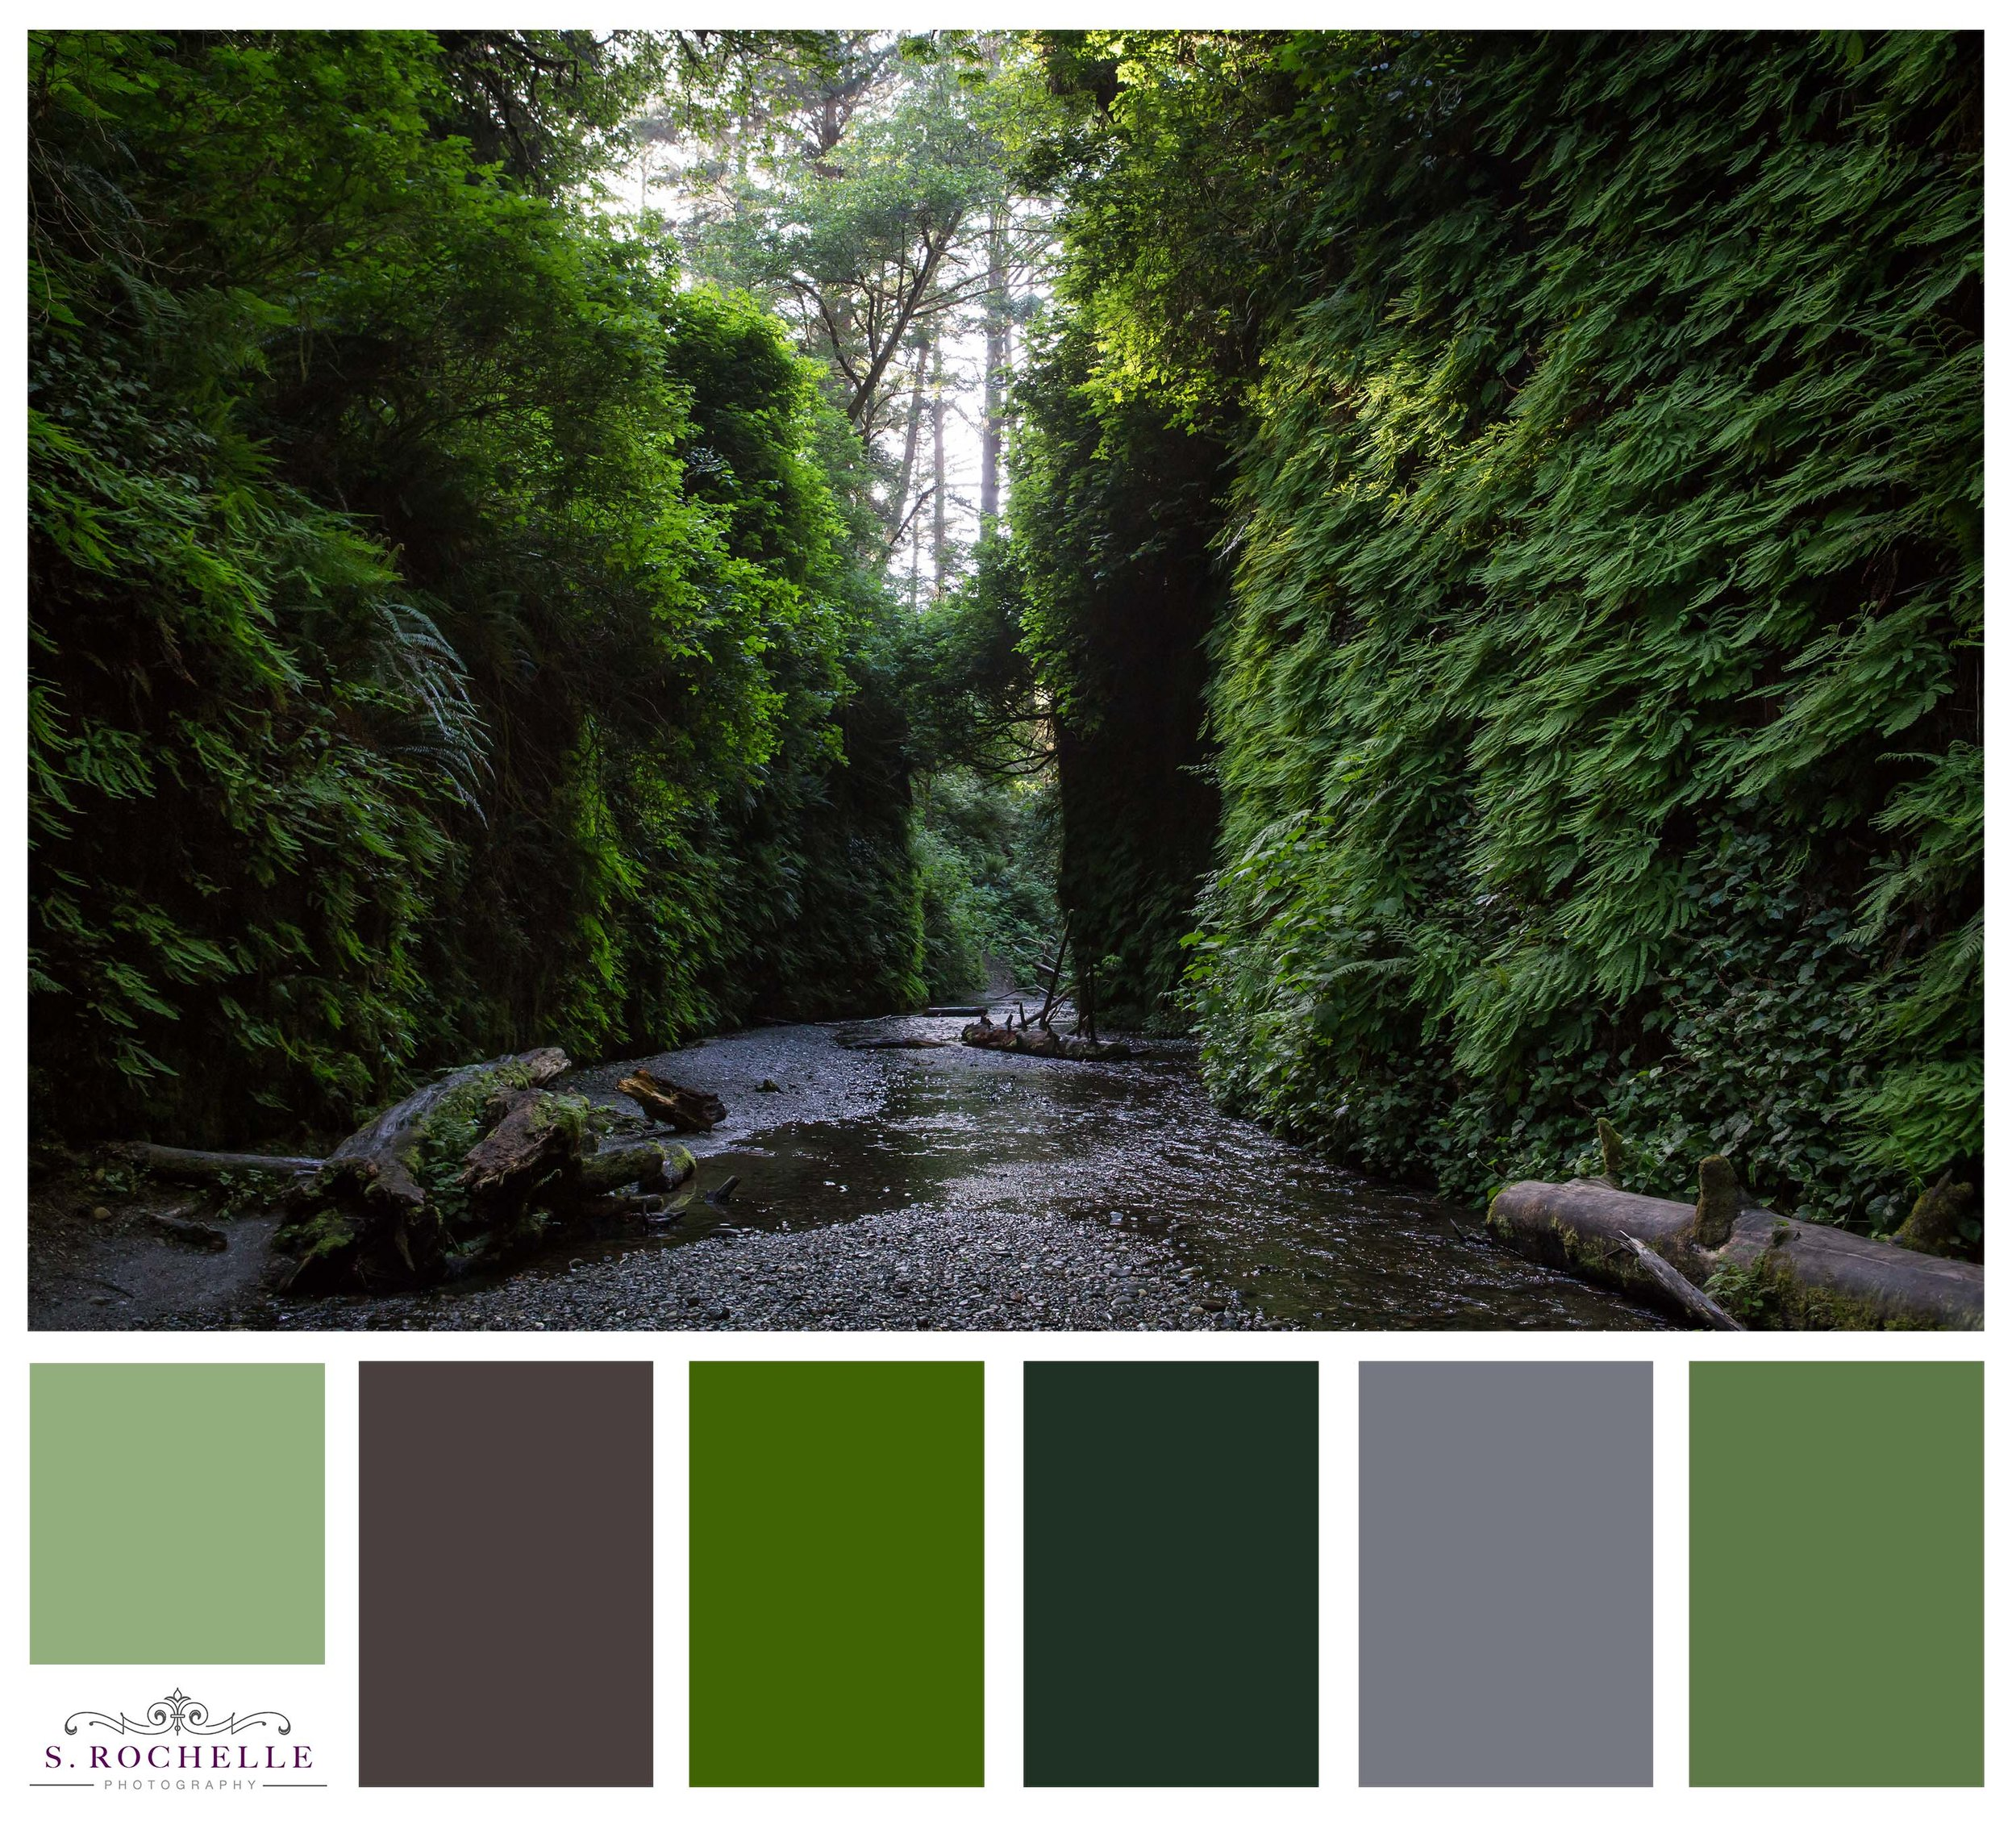 Fern_Canyon_S_Rochelle_Photography_20180527_IMG_9076_ColorPalette.jpg